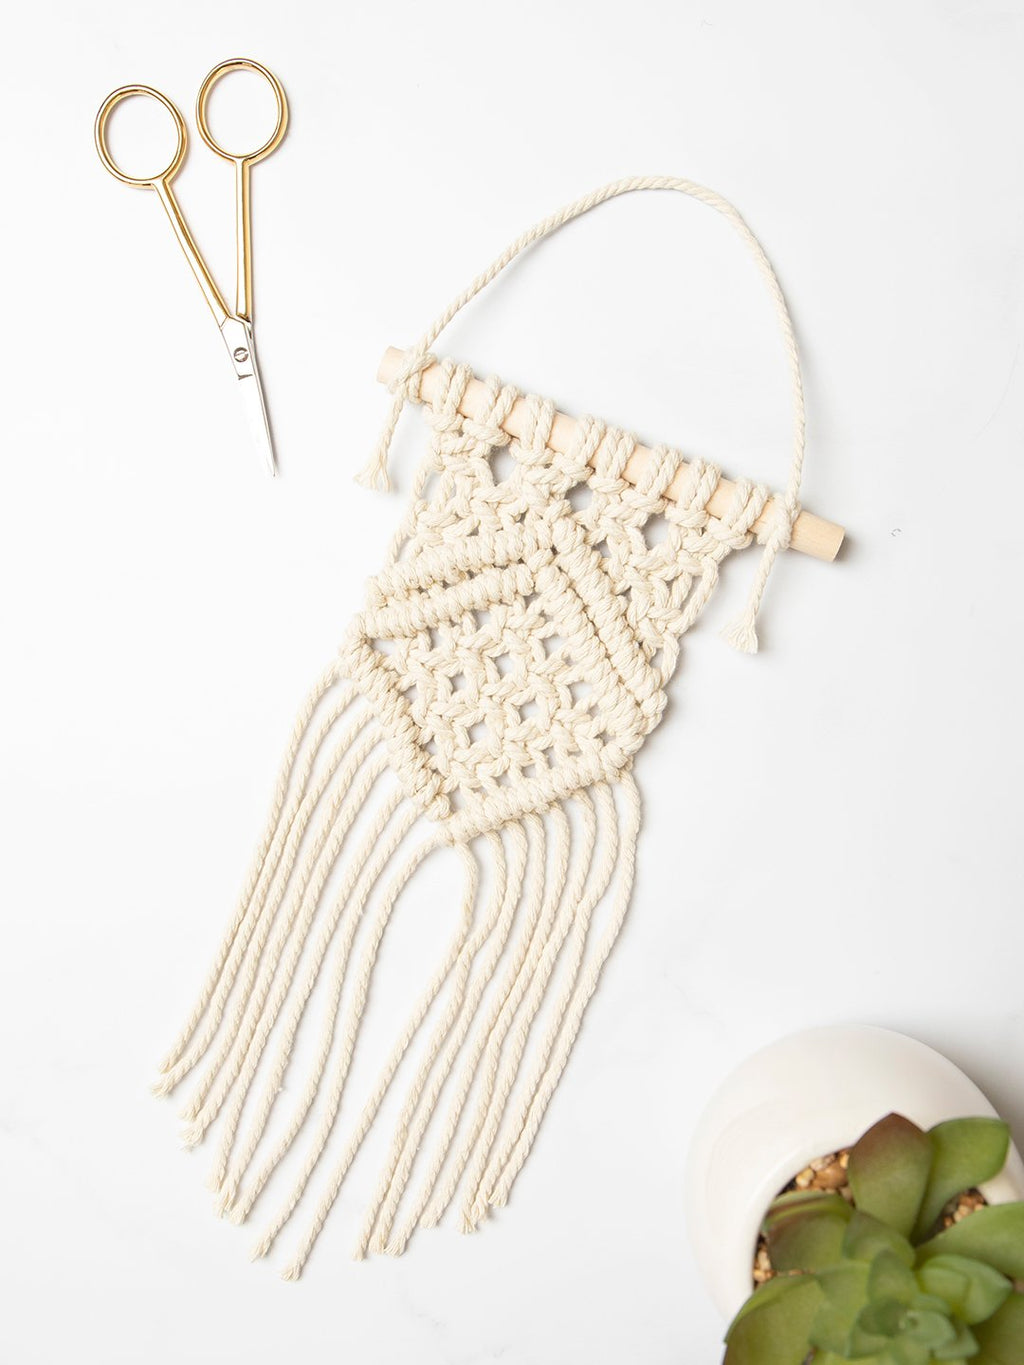 Mini Macramé Wall Hanging Craft Kit